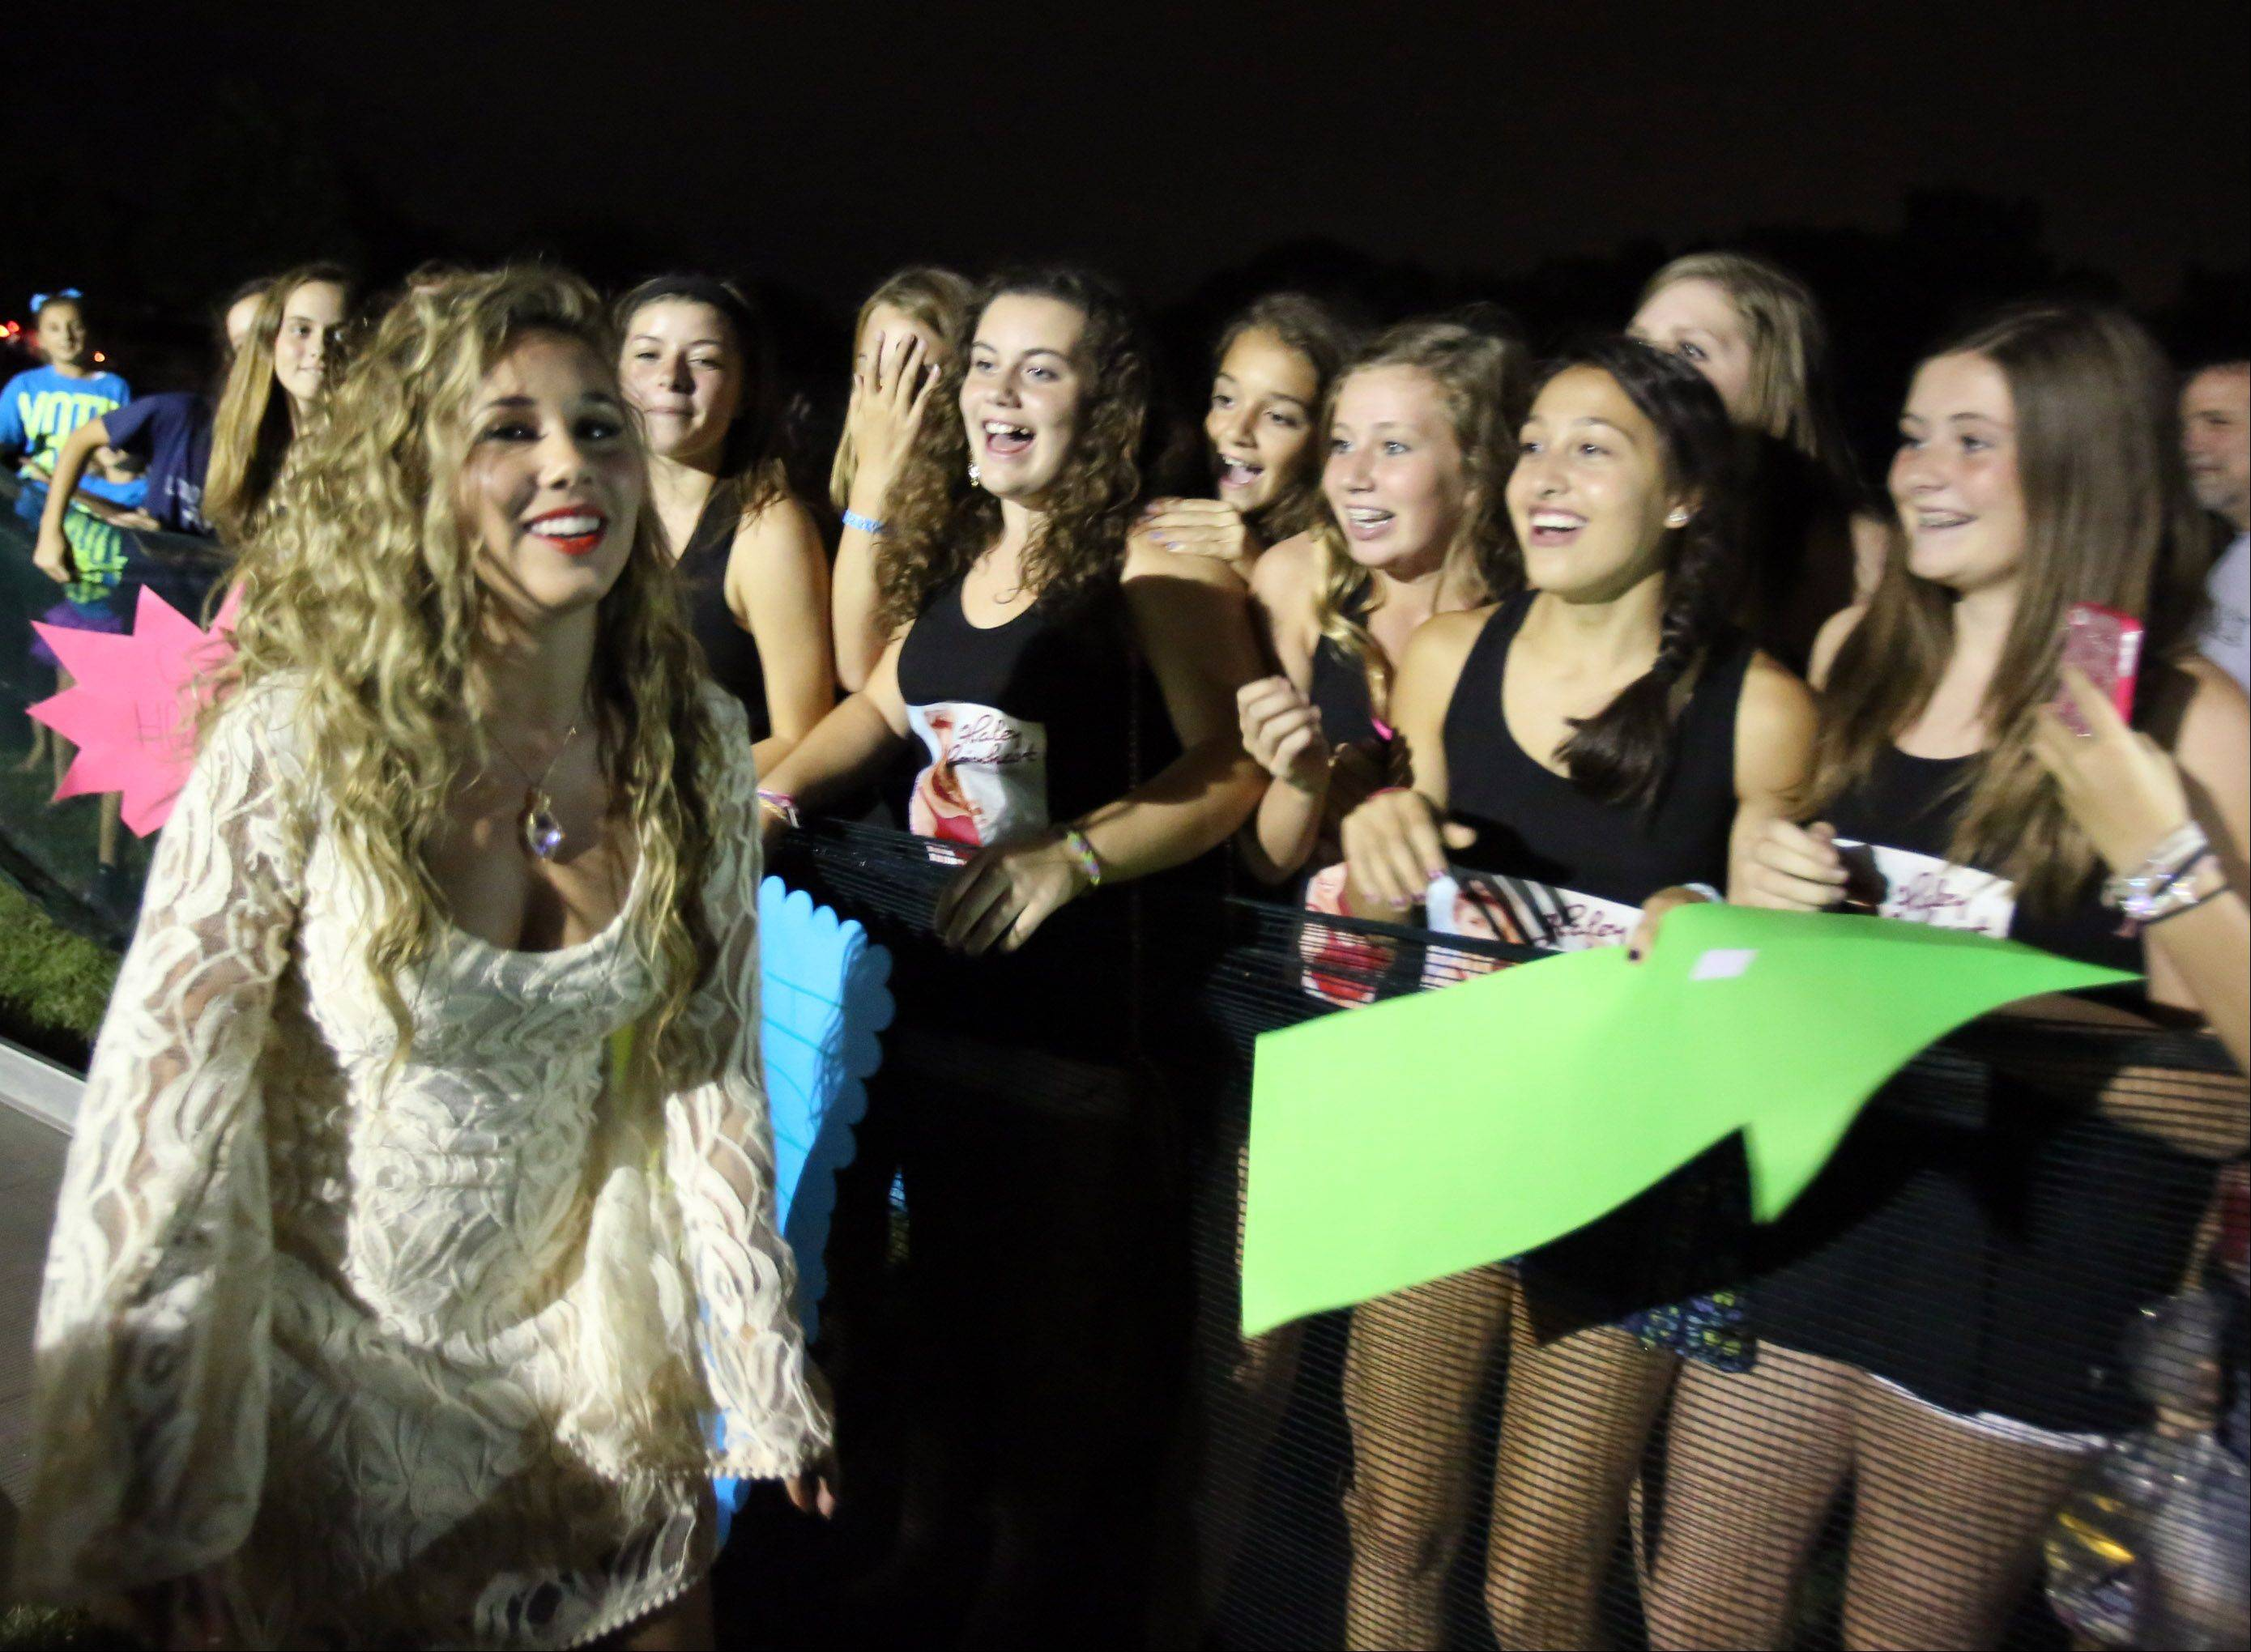 Former American Idol finalist Haley Reinhart greets fans before preforming with her family band, Midnight, at Buffalo Grove Days in Buffalo Grove on Saturday.